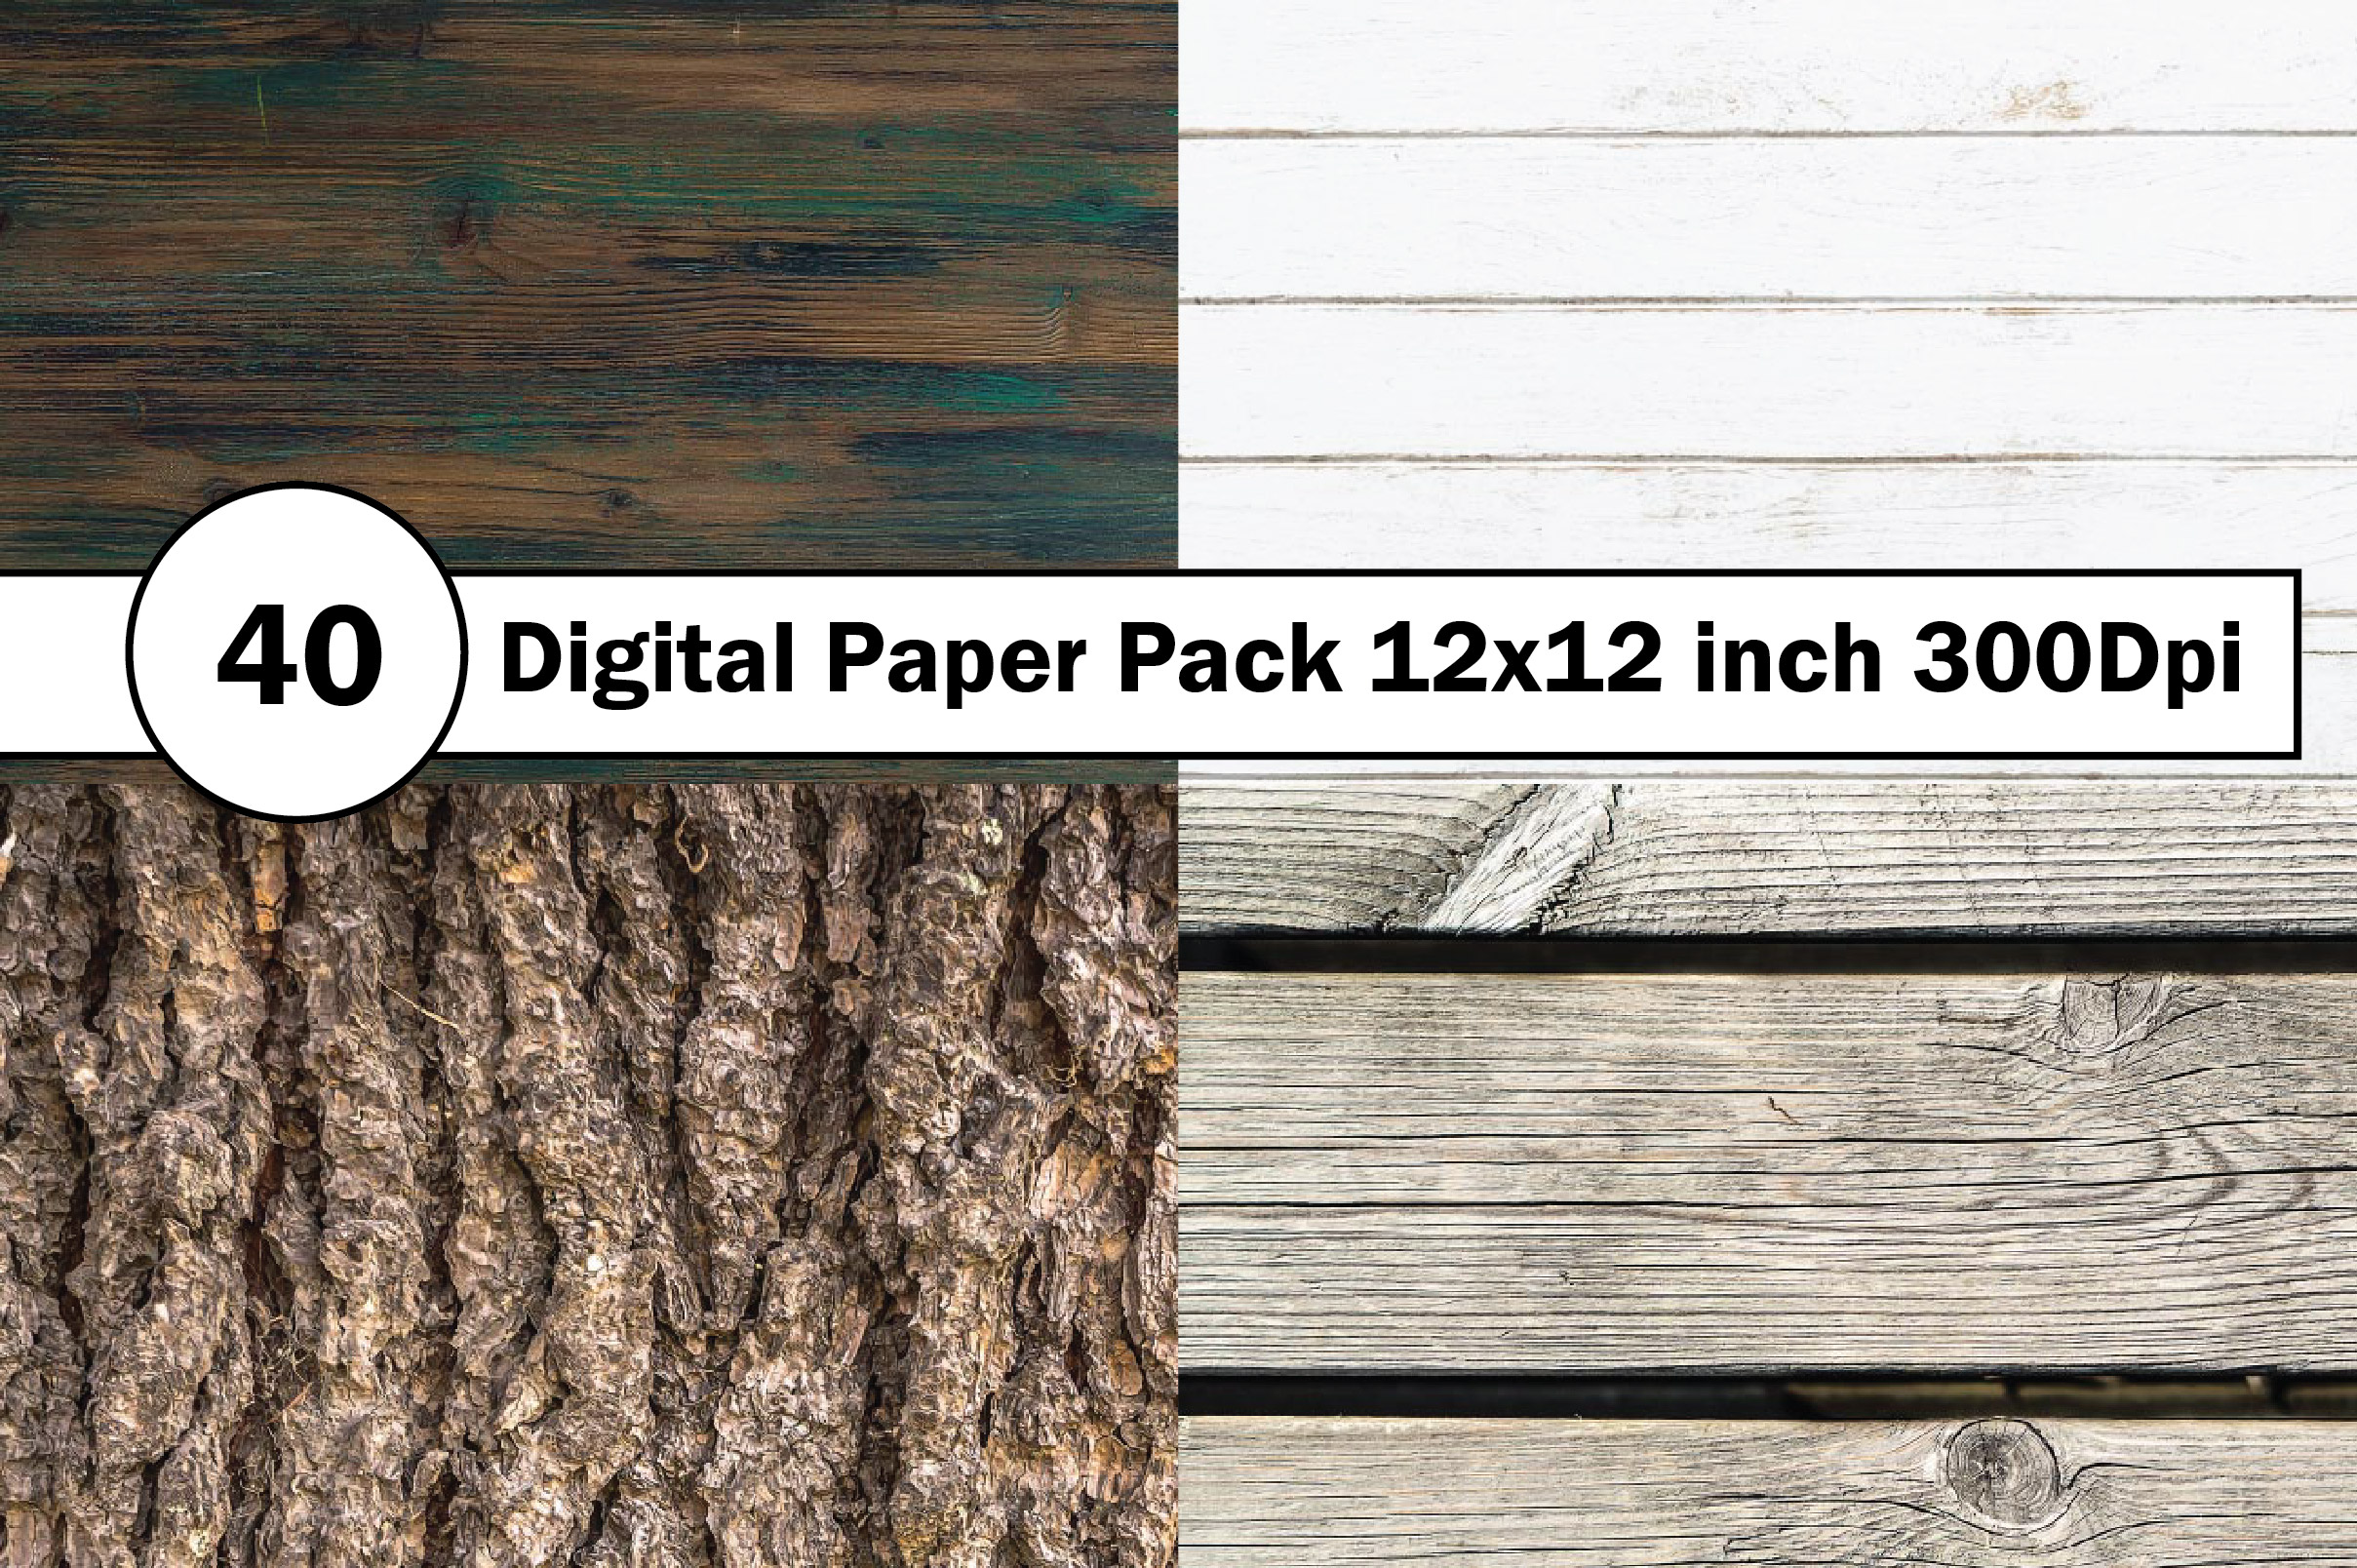 40 Digital Paper Pack 12x12 inch 300 Dpi example image 6